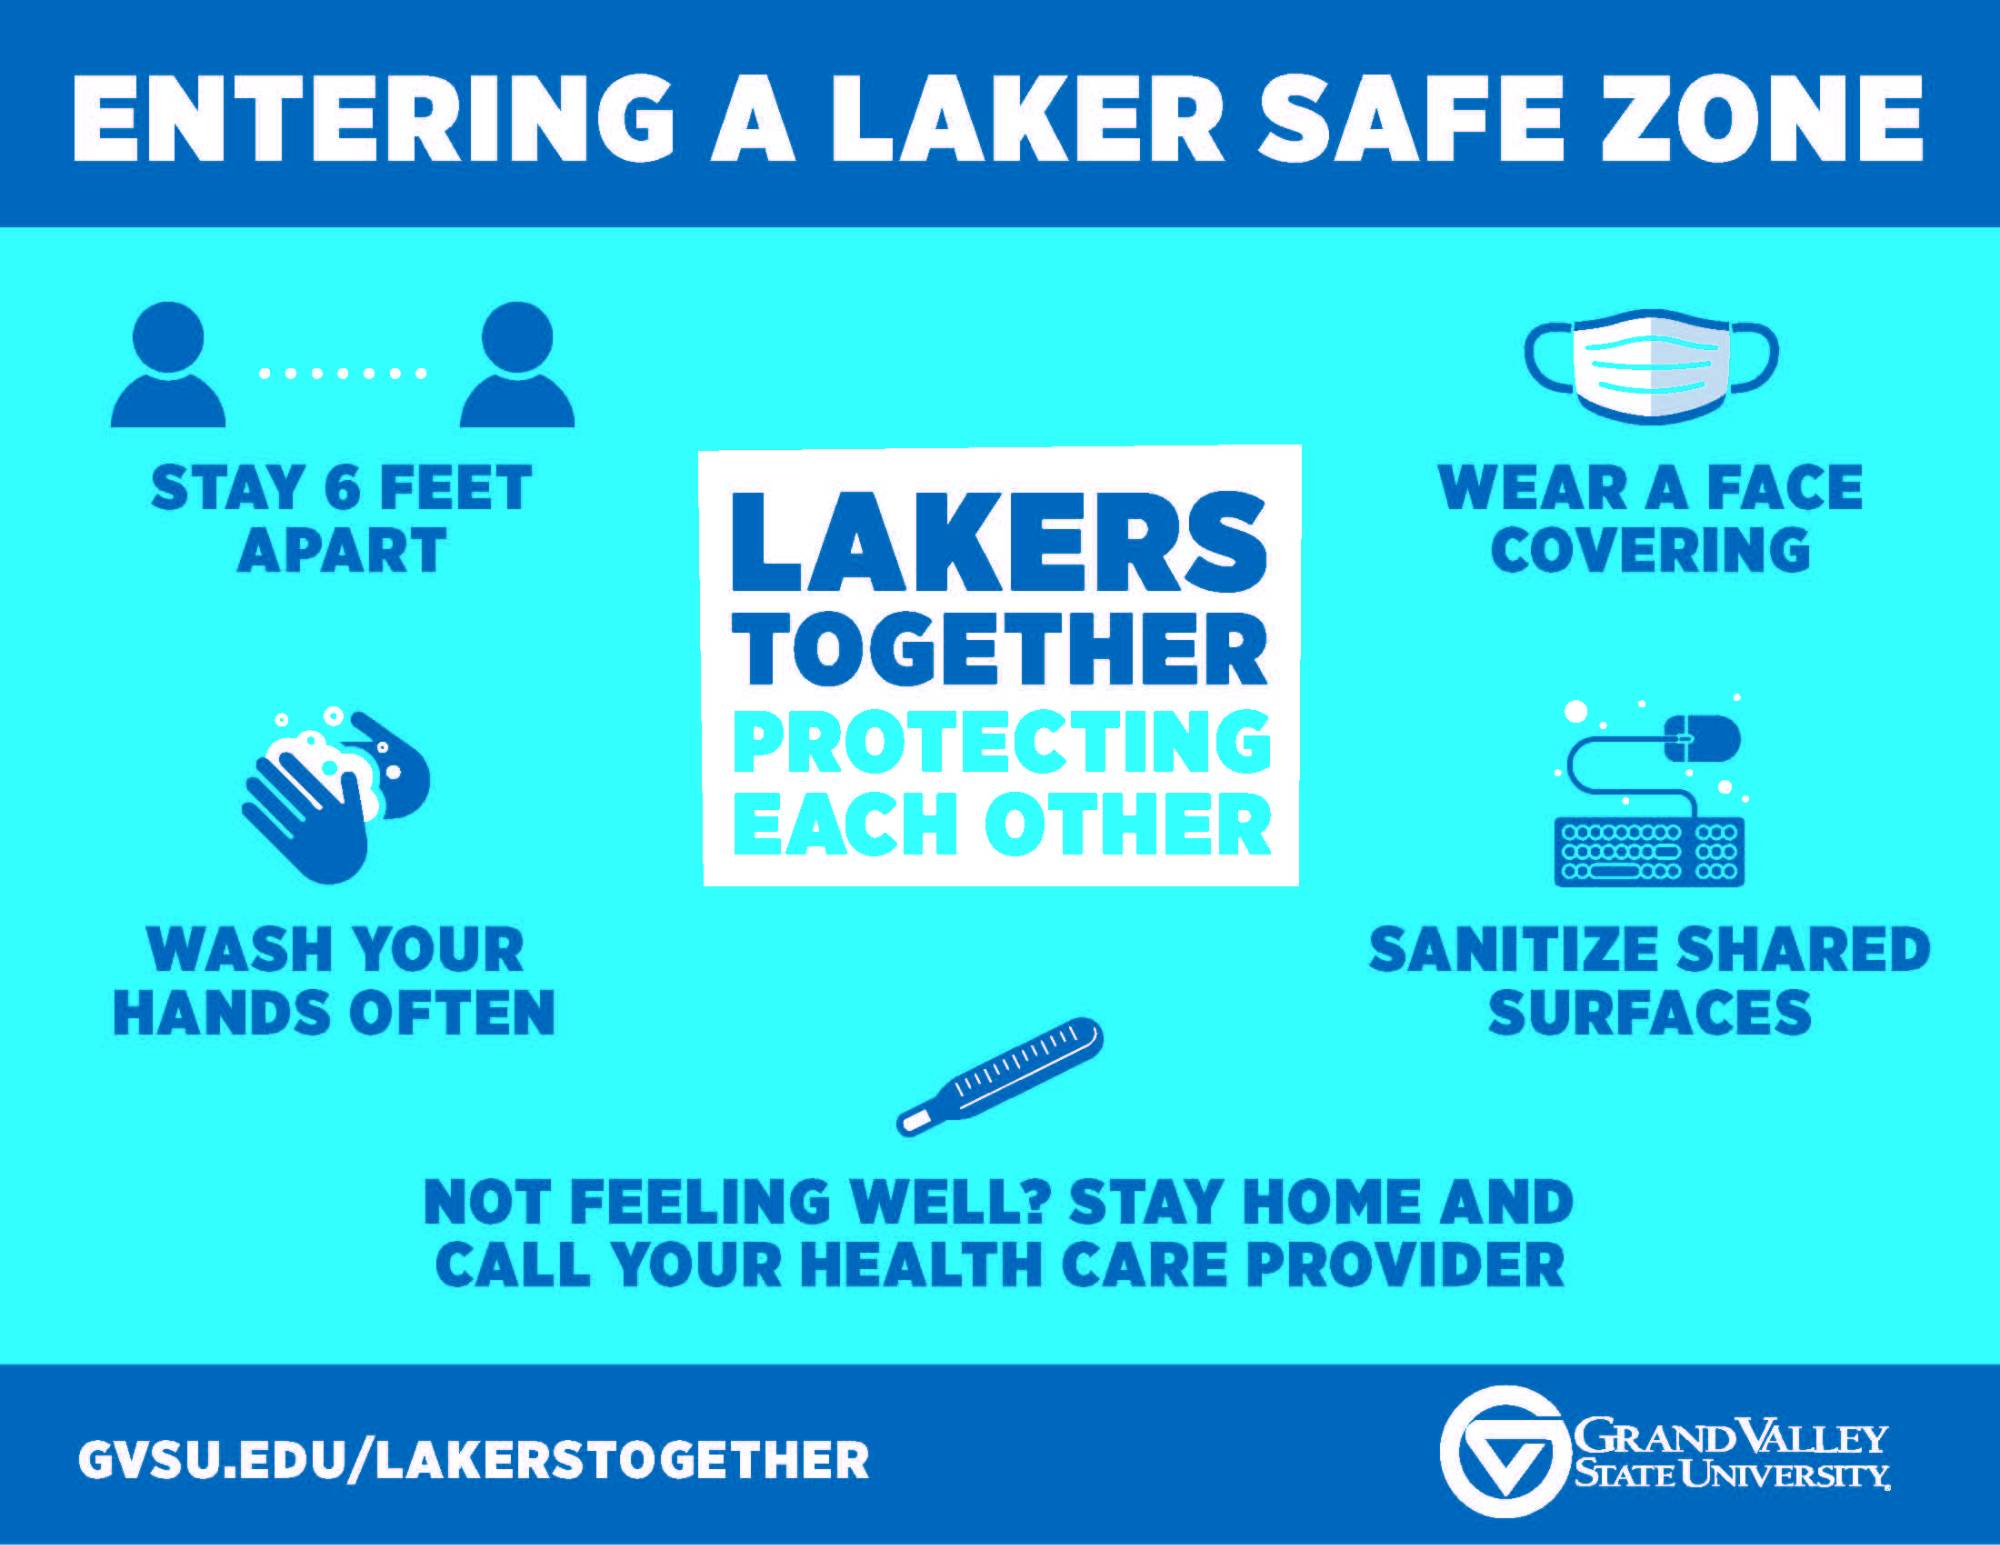 A window cling graphic that says entering a laker safe zone. Stay 6 feet apart, wash hands often, wear a face covering, sanitize surfaces, and call your health care provider if not feeling well.